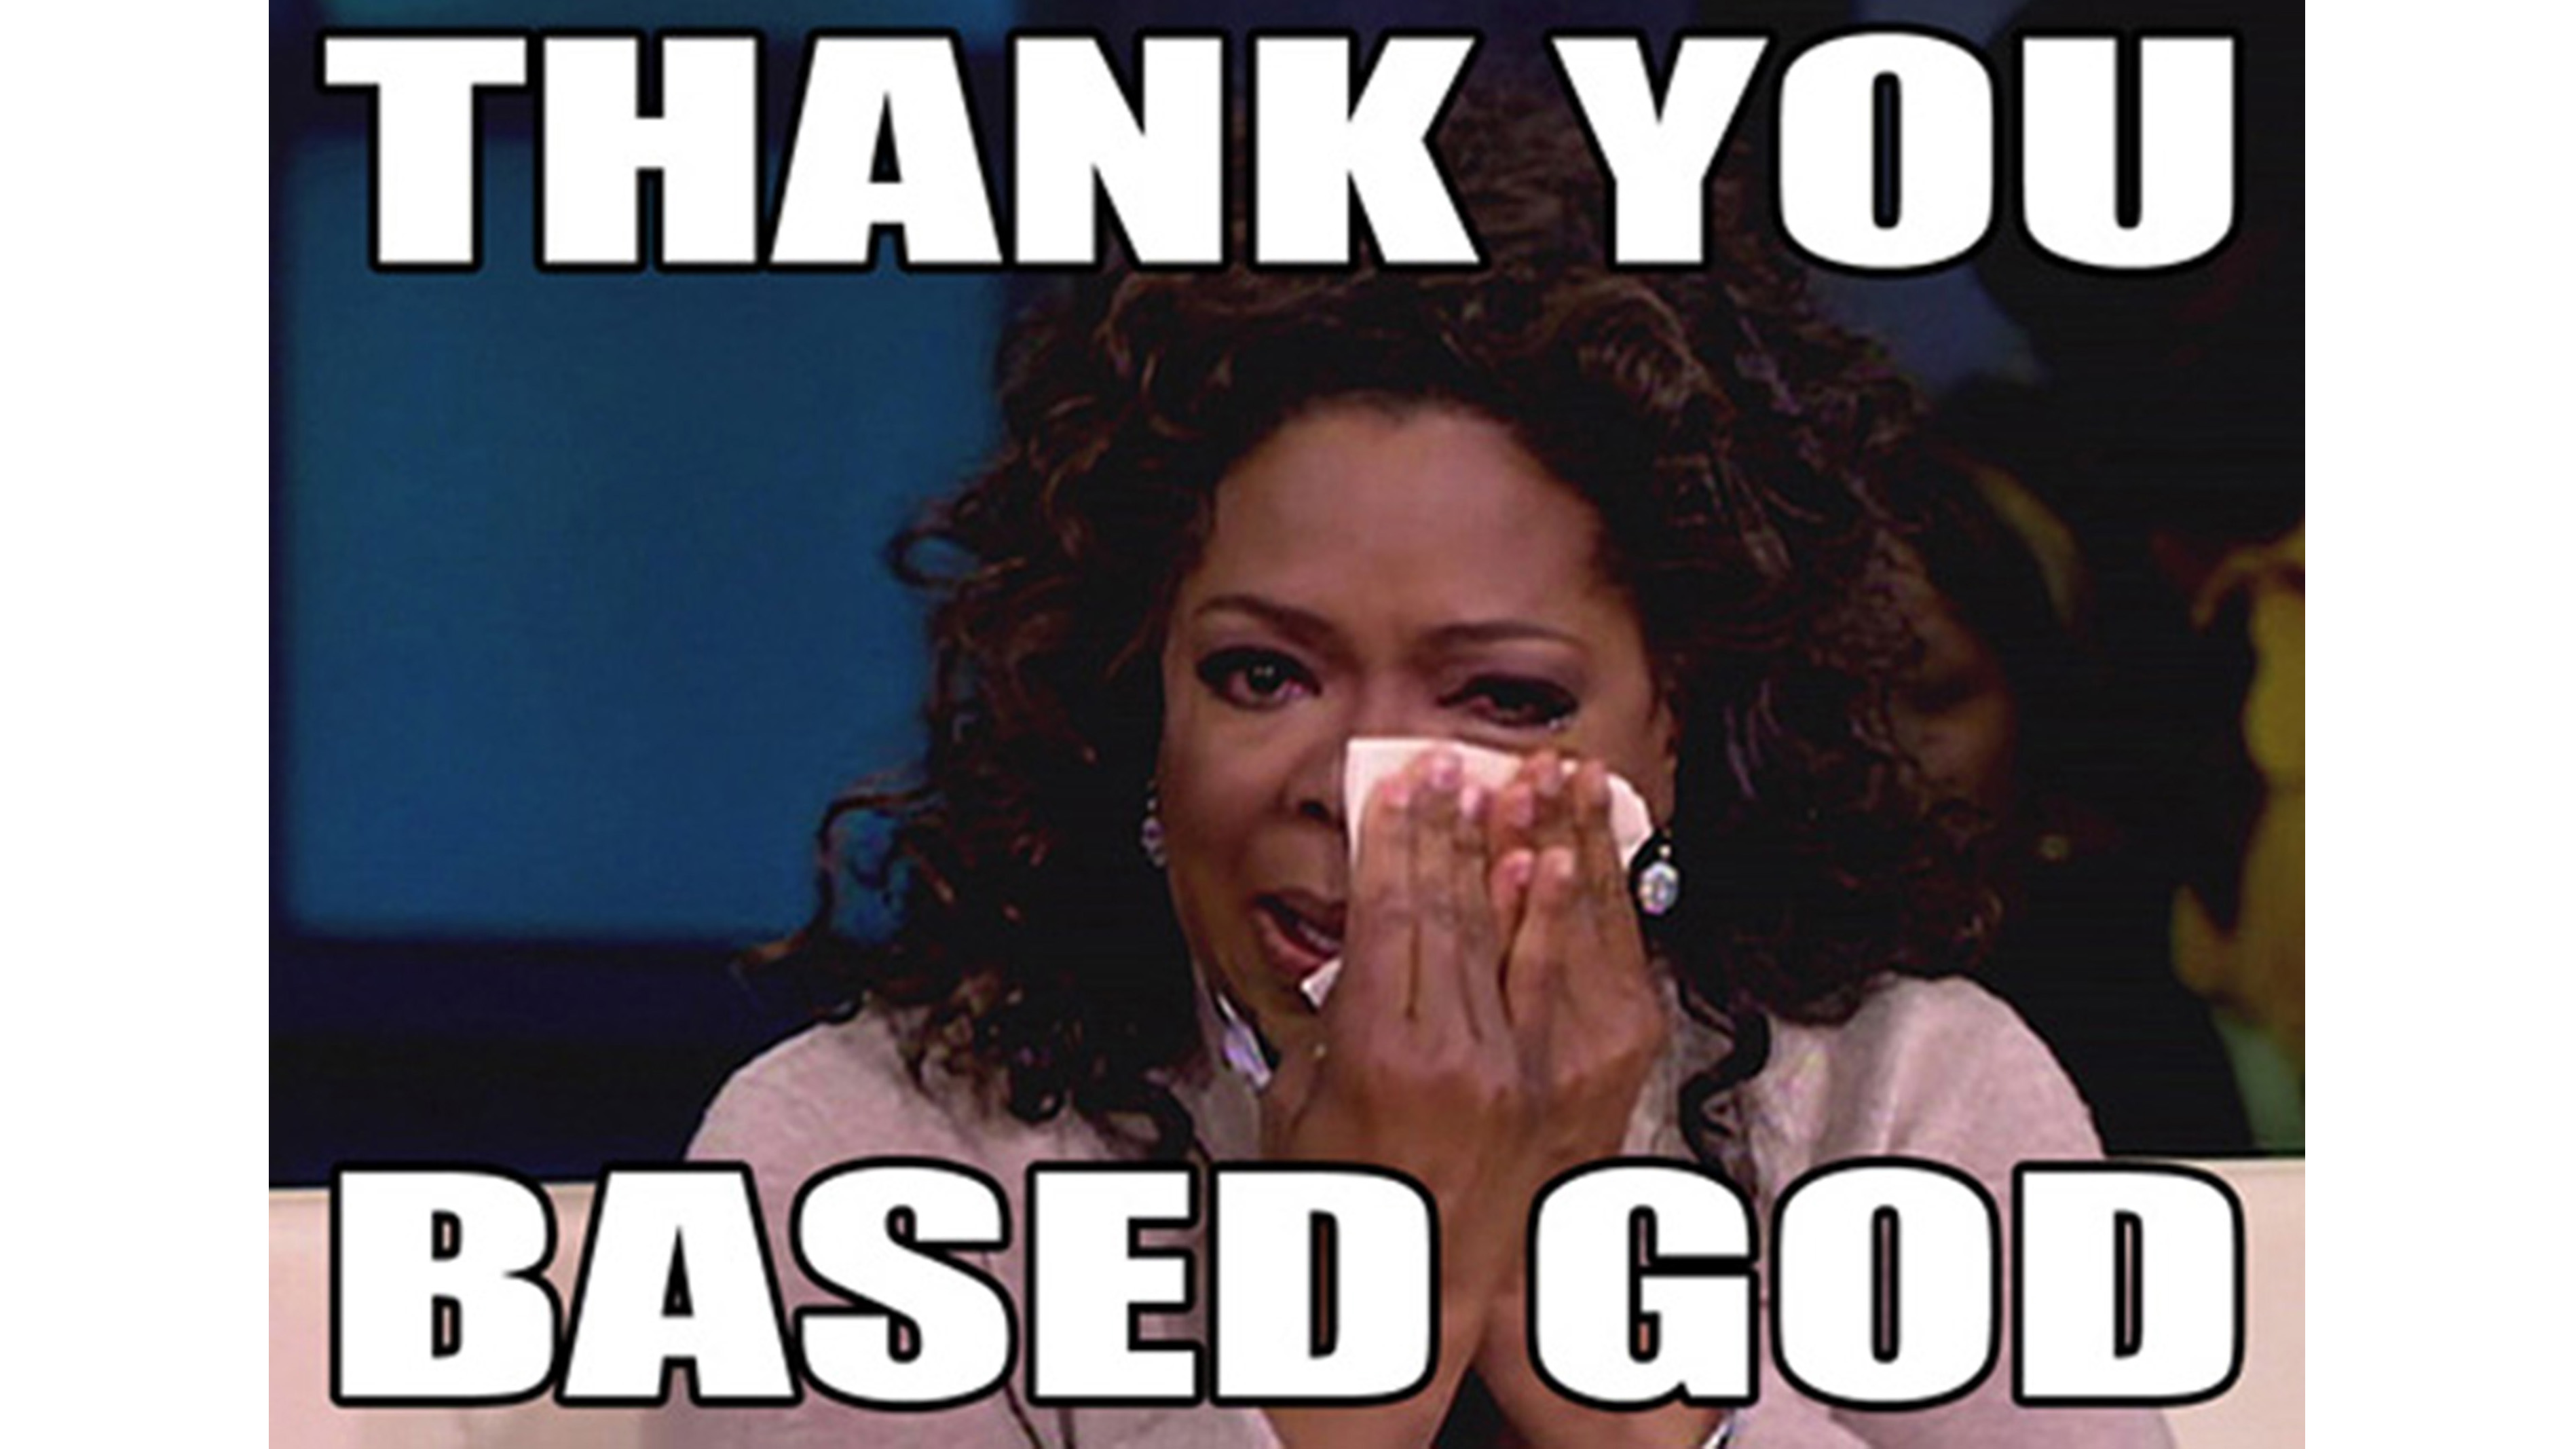 thank you based god_oprah12 based god know your meme